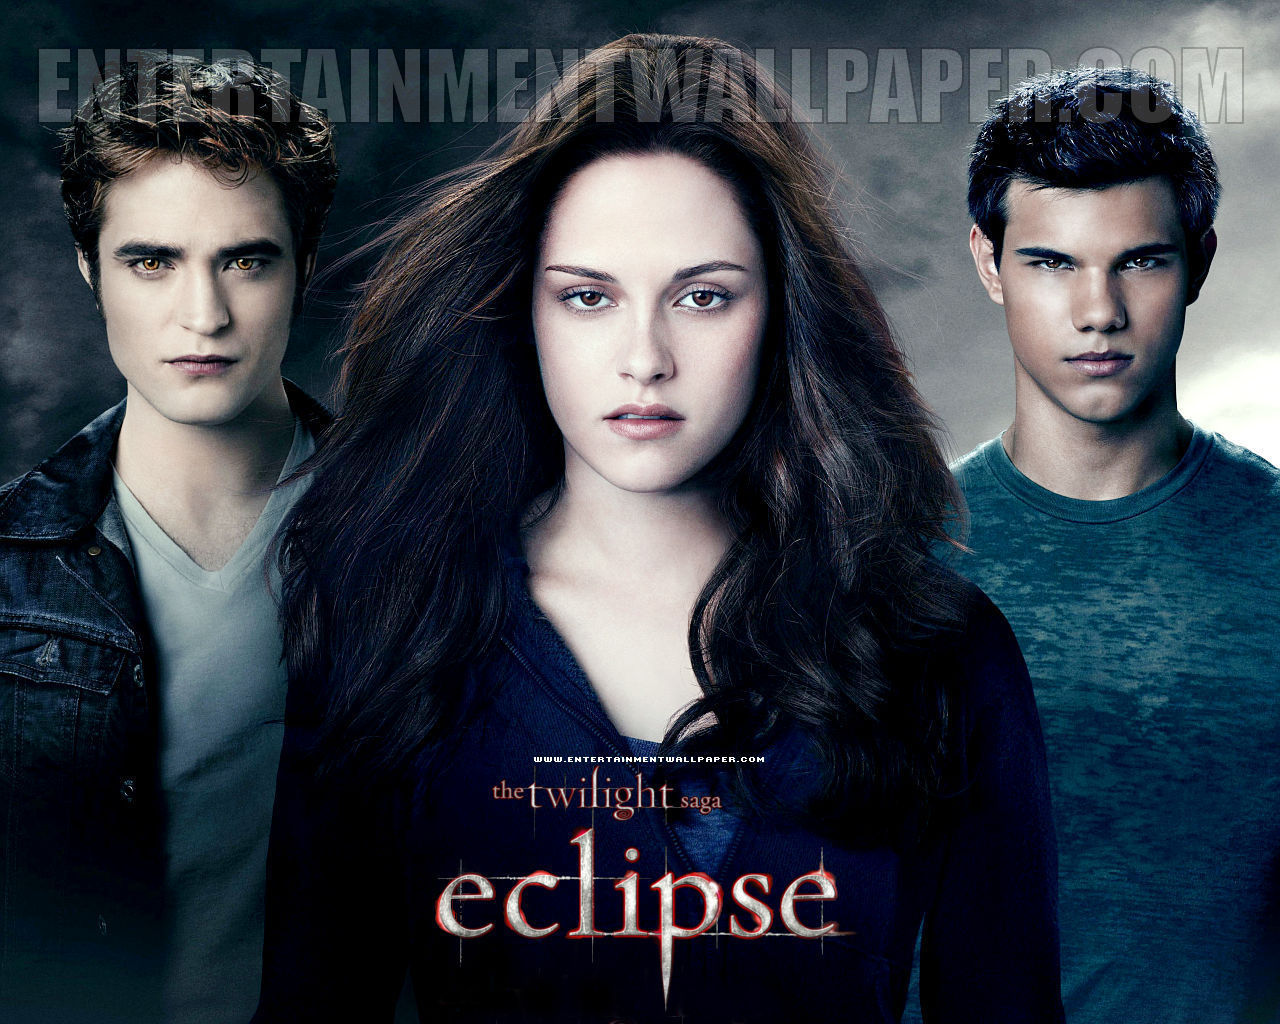 New information on the movie eclipse